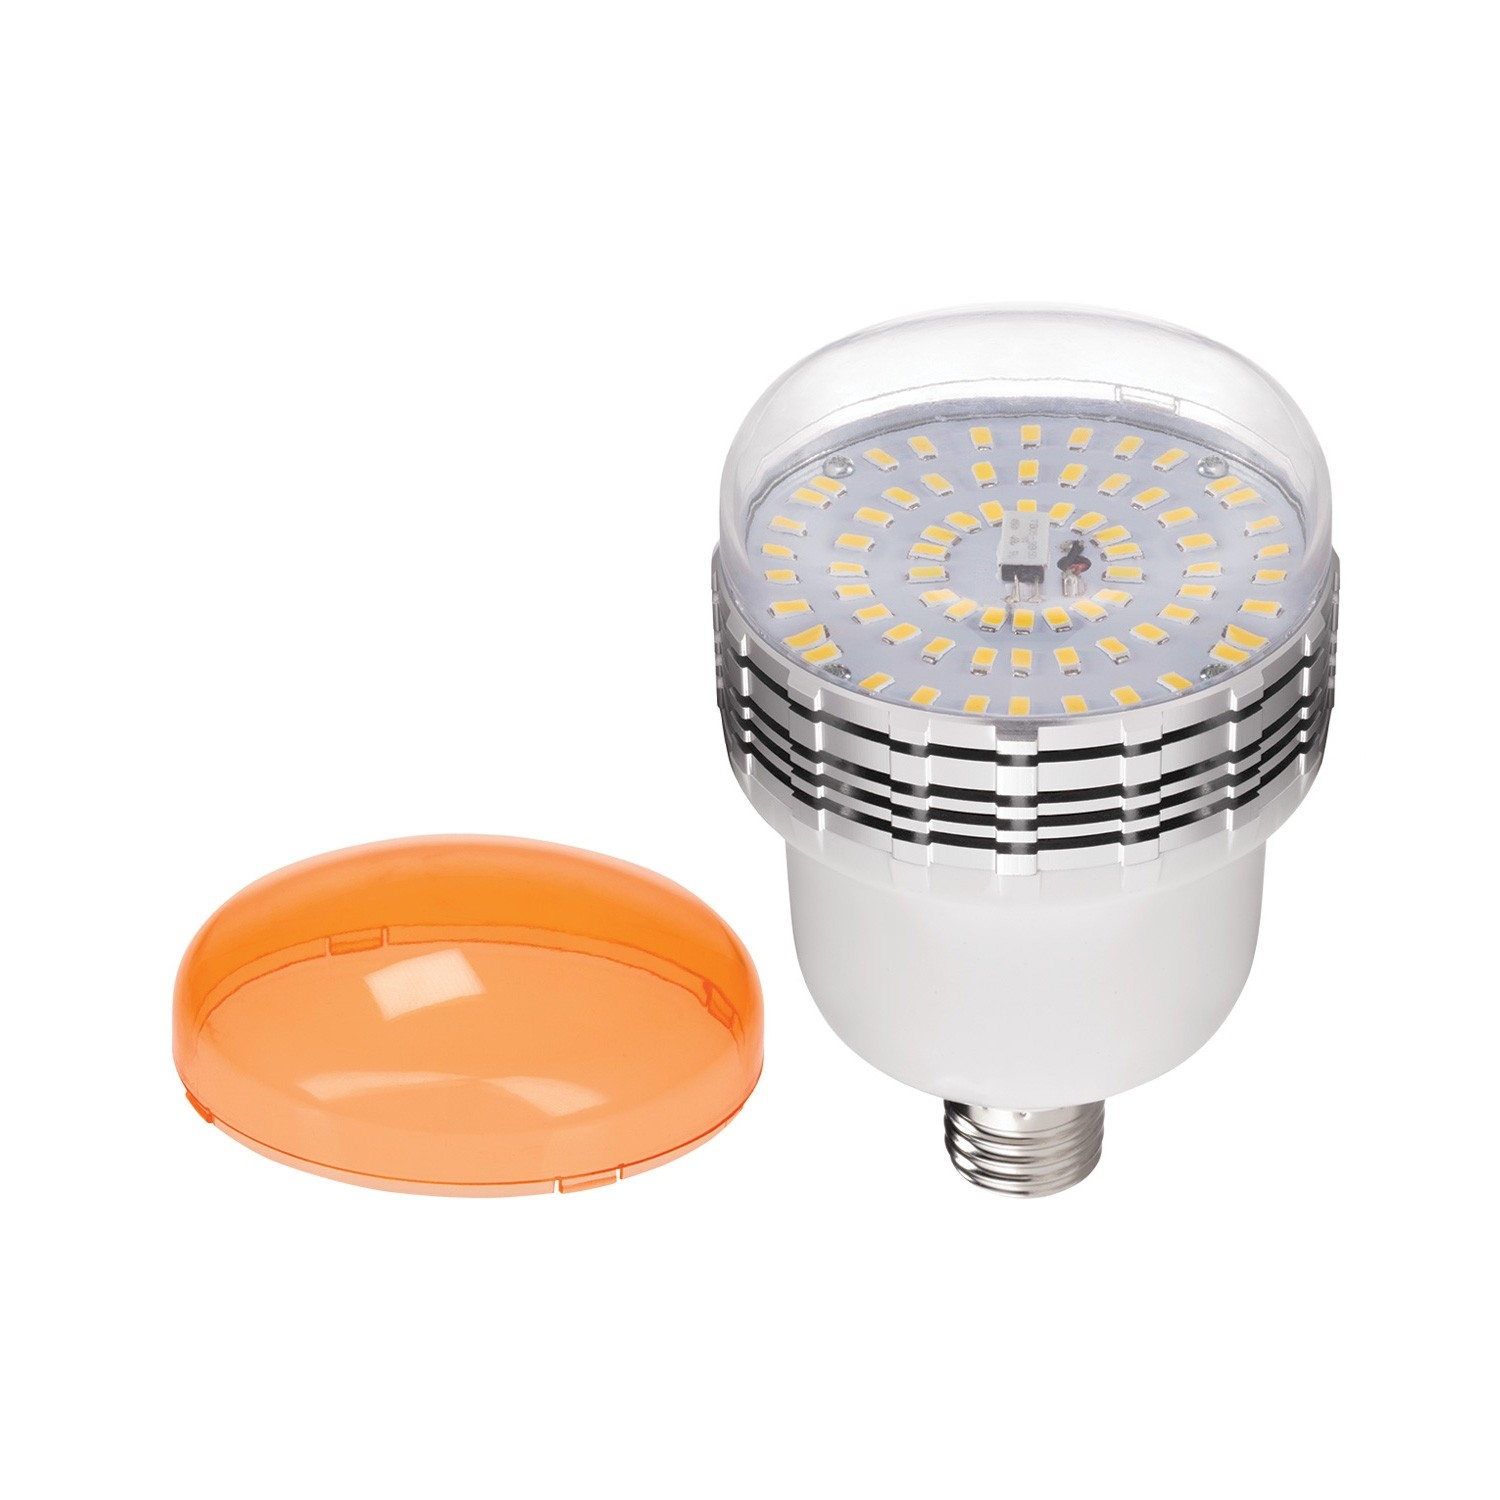 Westcott 45w Daylight Dimmable Led Bulb With Tungsten Gel Cap And Remote Energy Efficient And Long Lasting Led Lamp With Remote Control Unit